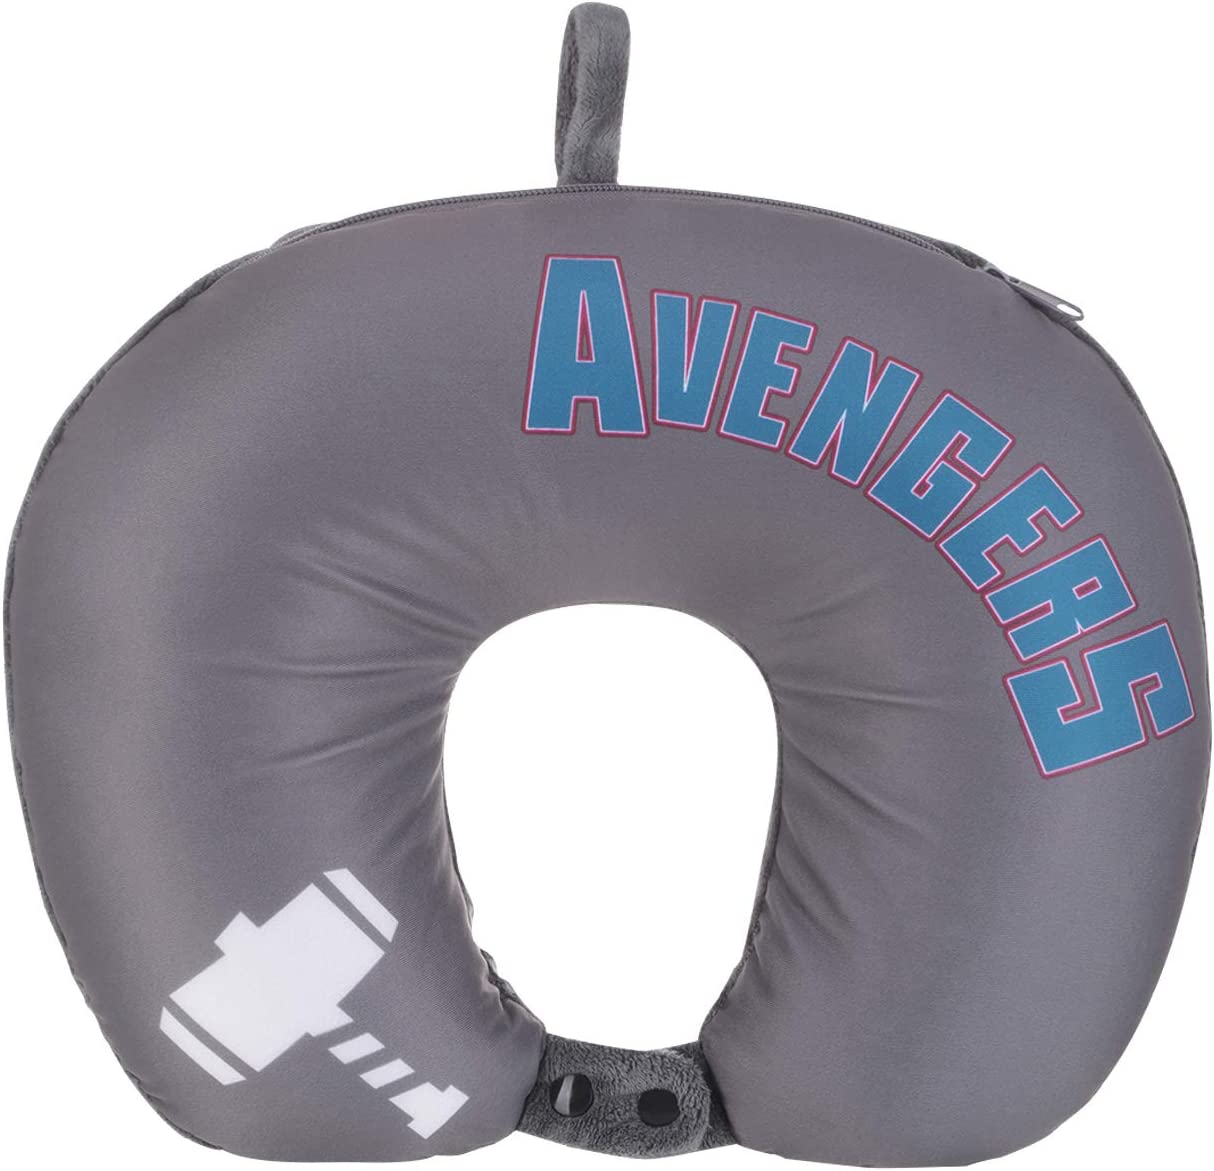 MINISO Avengers 2 in 55% OFF 1 U-Shaped Travell for Neck Discount mail order Pillow Airplane